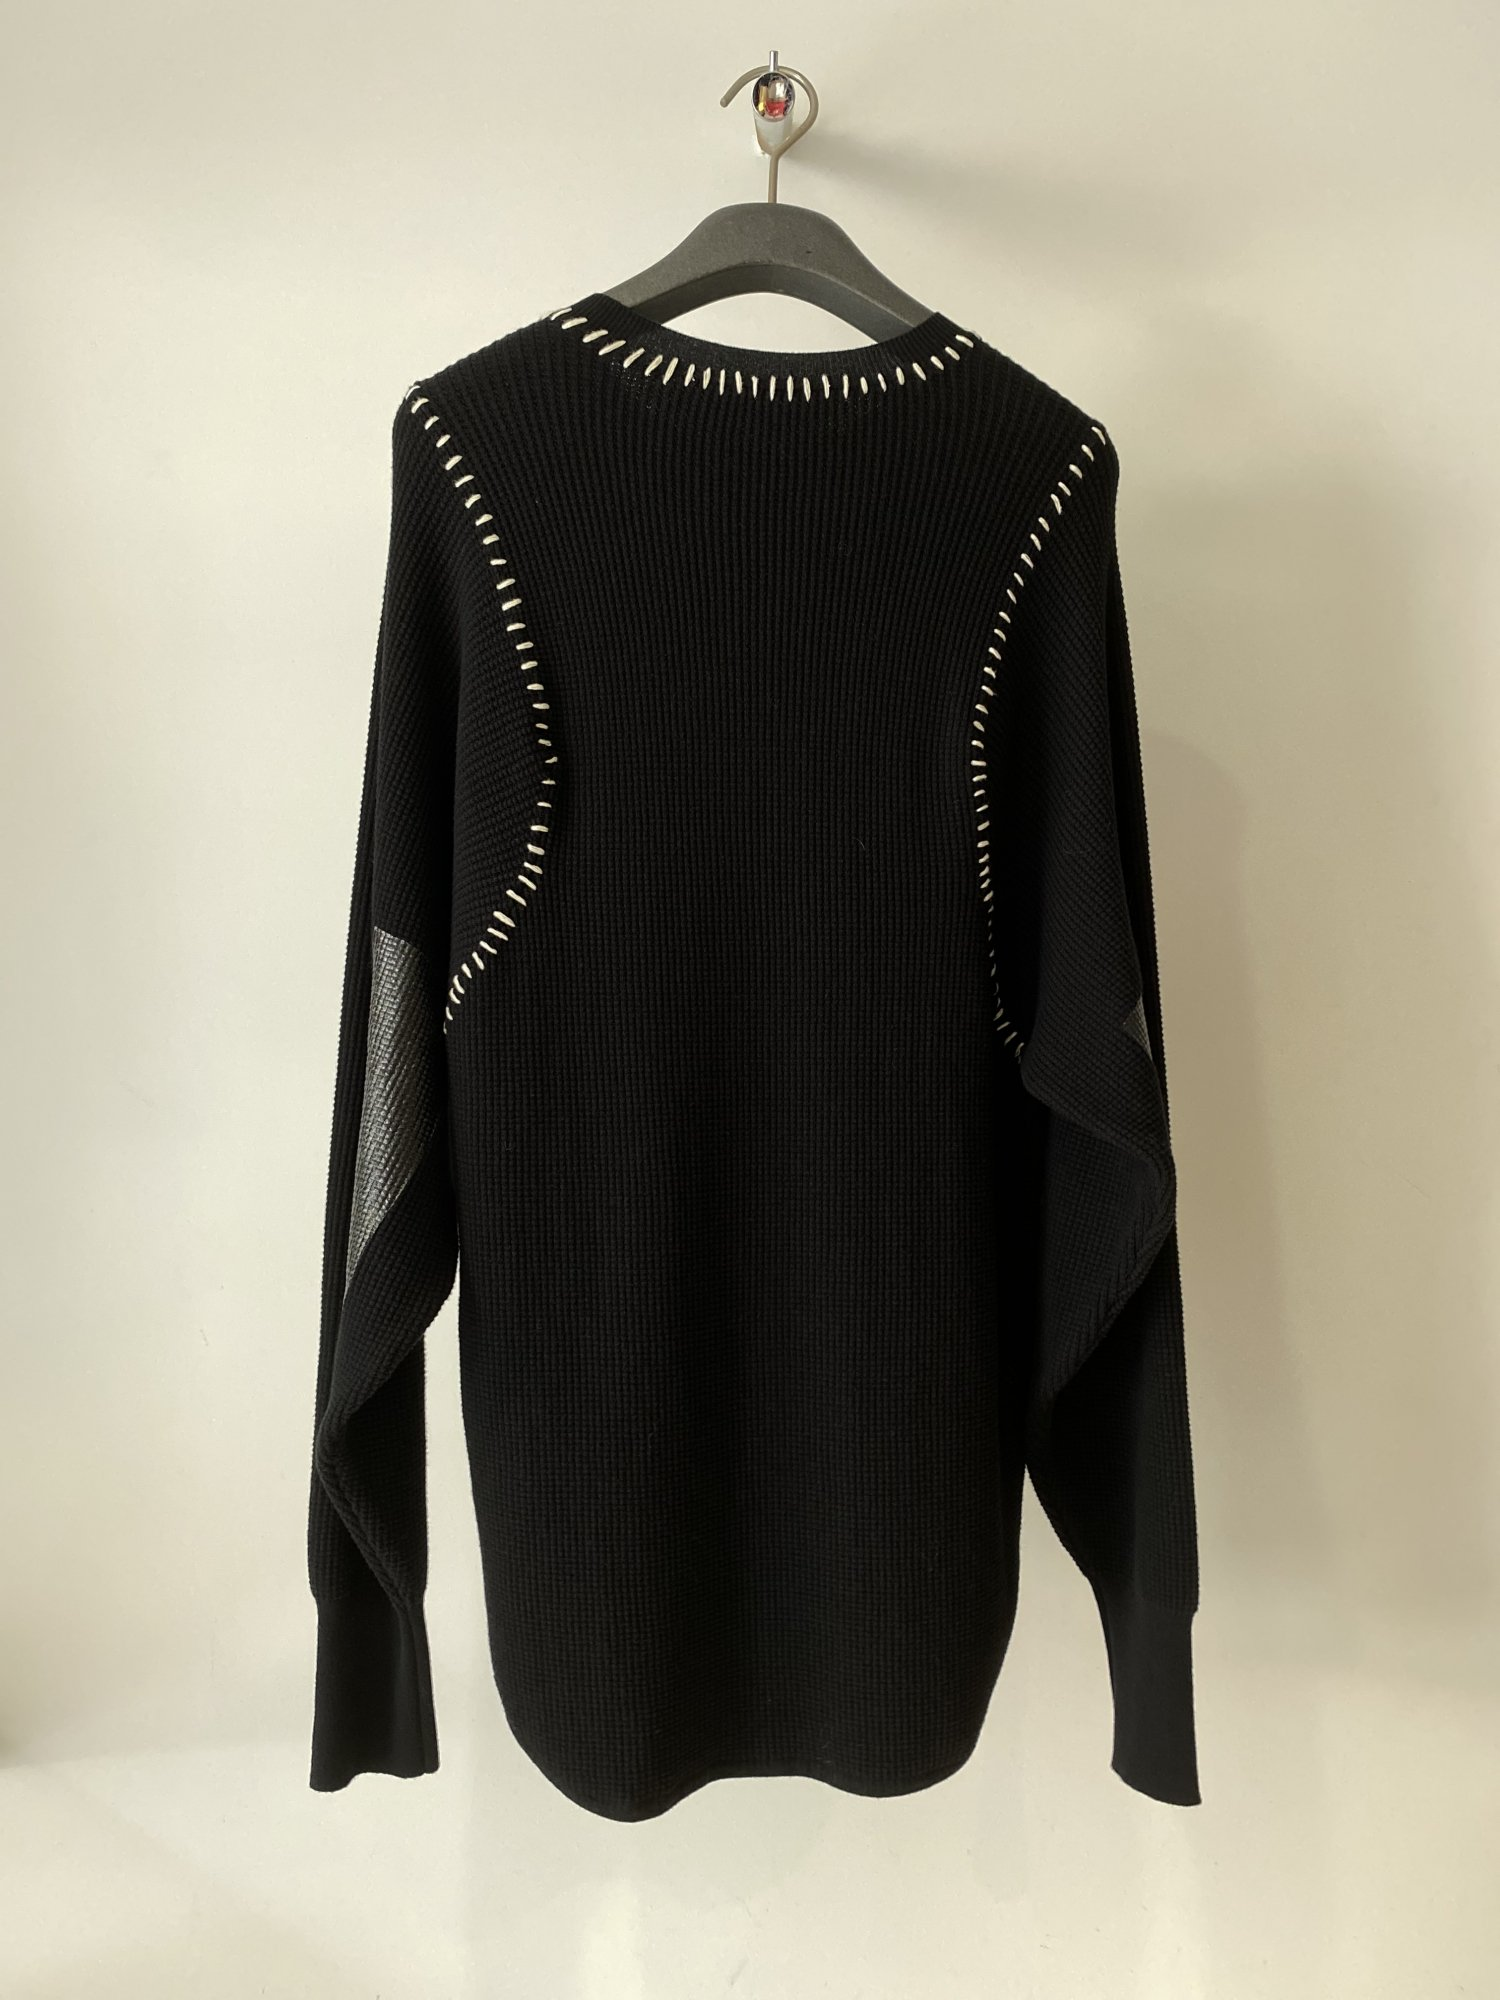 soduk<br />thermal knit pullover / black<img class='new_mark_img2' src='https://img.shop-pro.jp/img/new/icons14.gif' style='border:none;display:inline;margin:0px;padding:0px;width:auto;' />